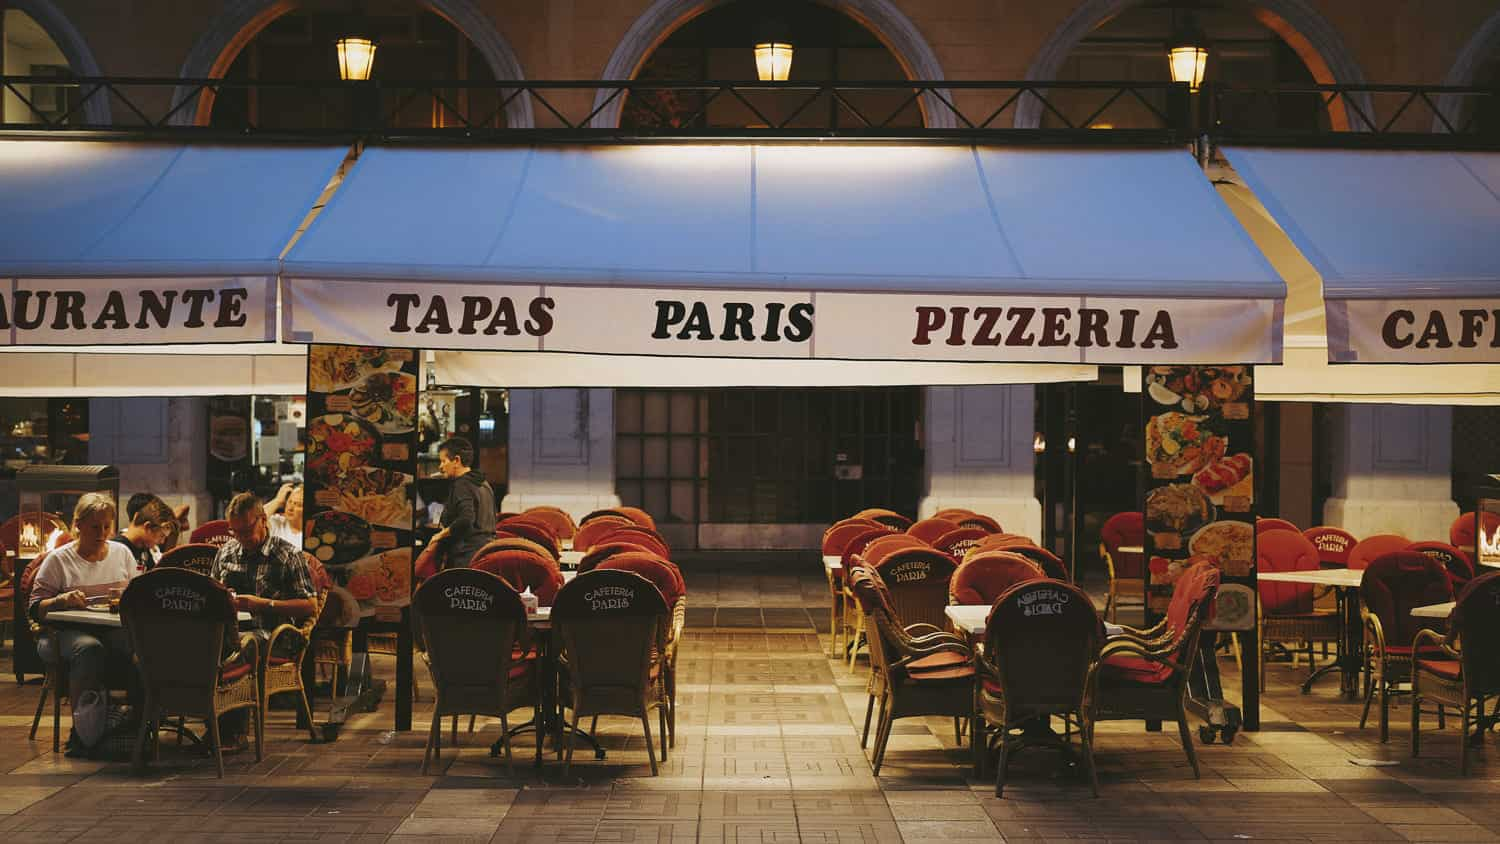 For catchy Spanish restaurant name ideas, you can use fun words using the location in your name